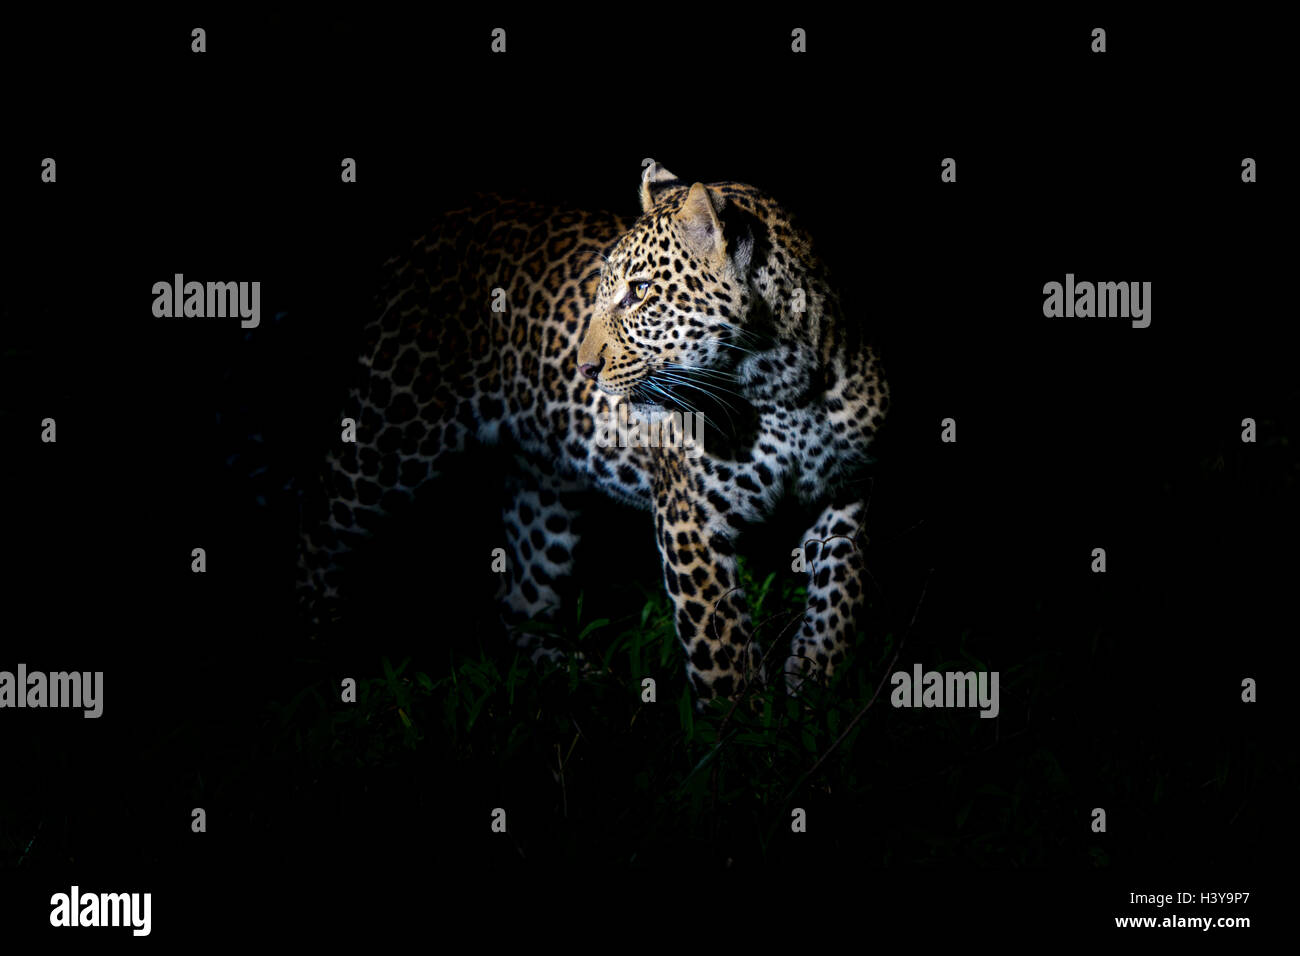 African Leopard (Panthera pardus) standing in the dark, illuminated on the head, Masai Mara national reserve, Kenya. - Stock Image